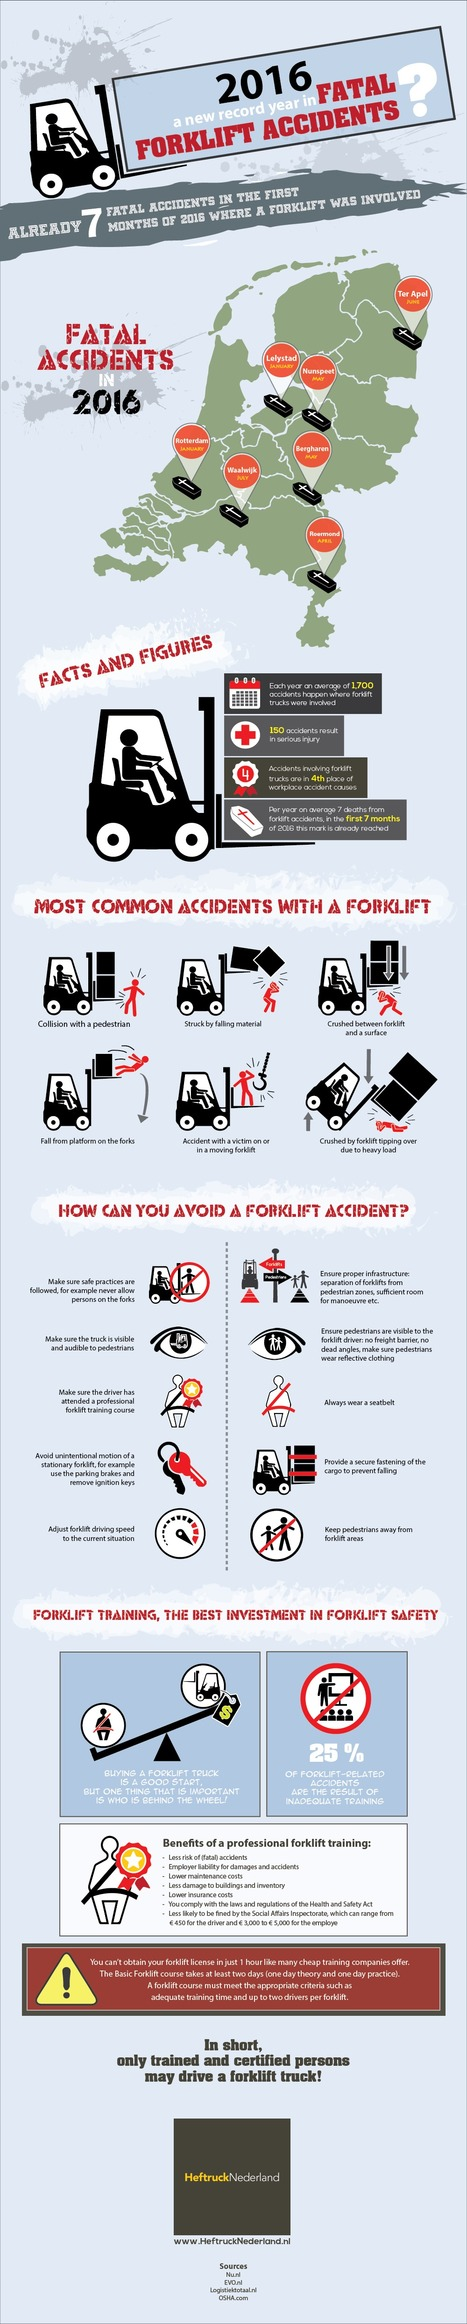 2016 Fatal Forklift Accidents | Infographics | Scoop.it